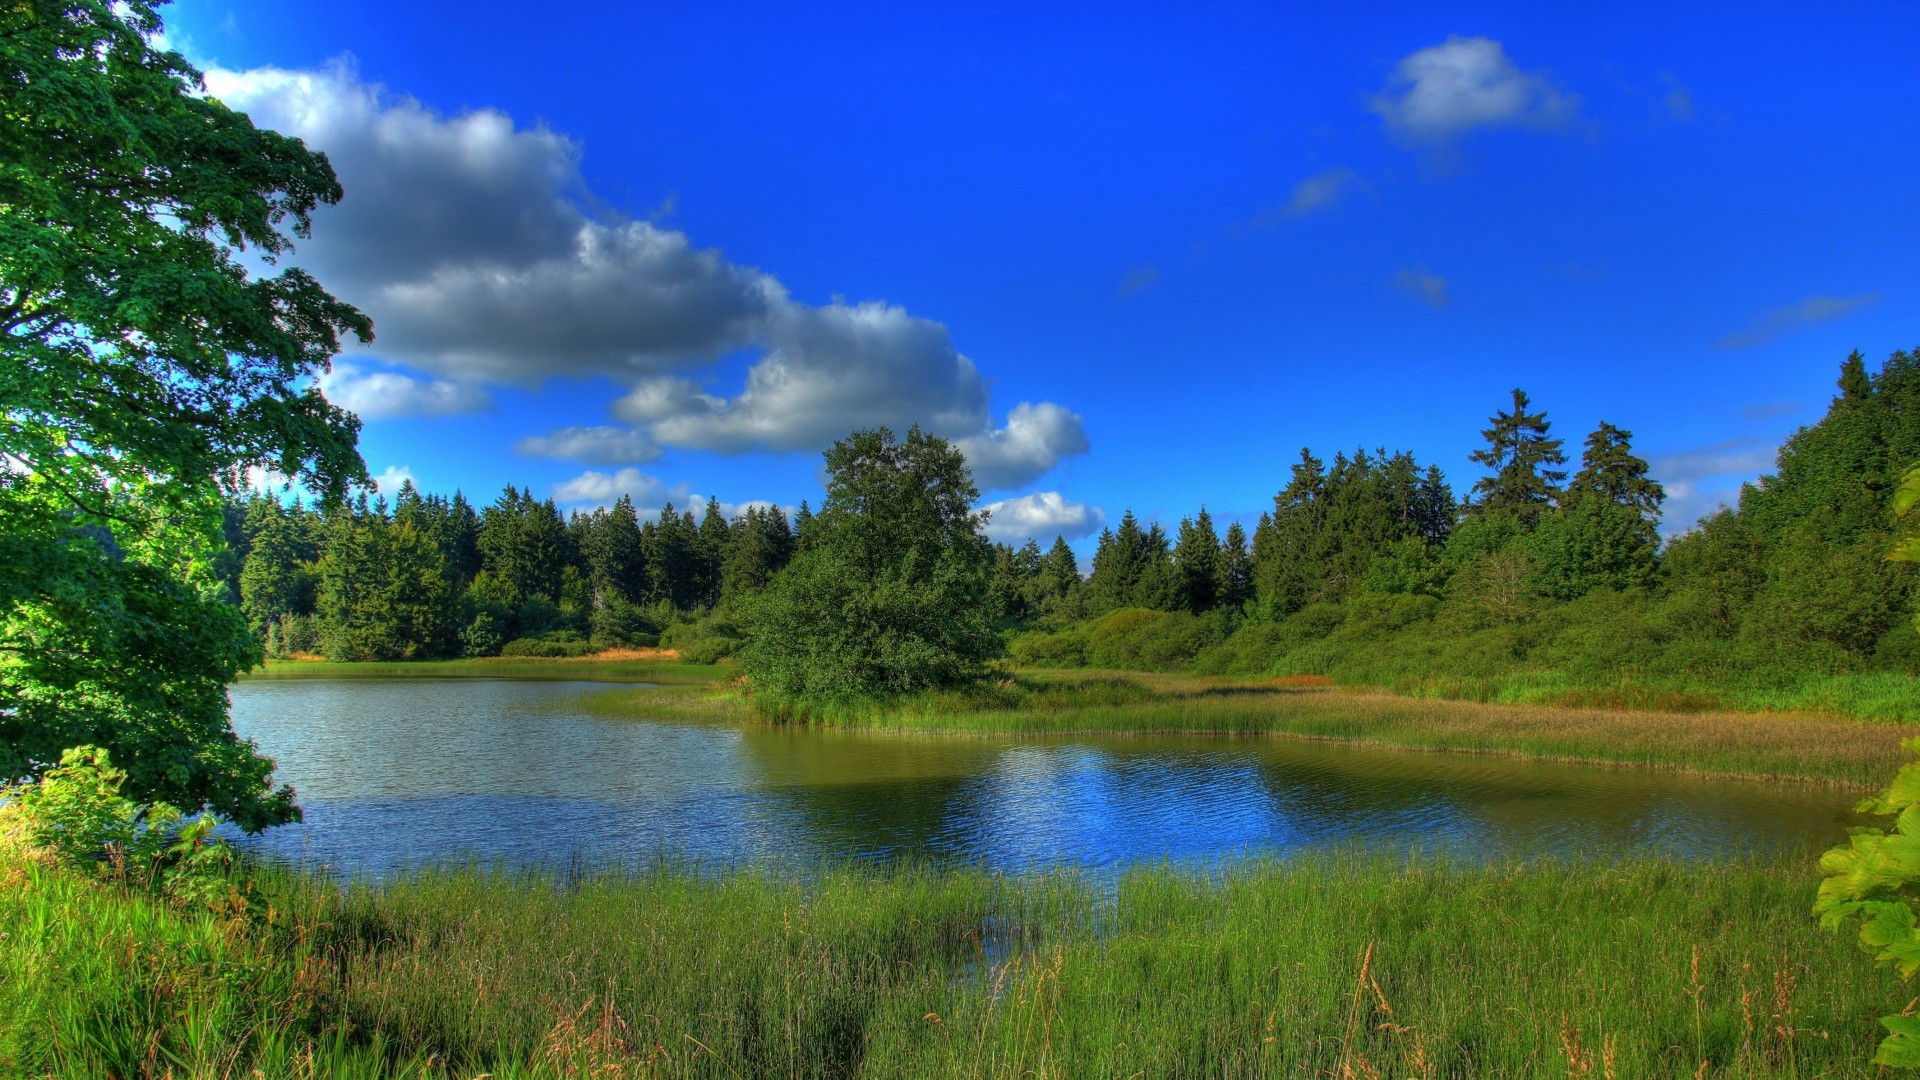 Preview wallpaper germany, landscape, lake, hessen, grass, nature 1920×1080